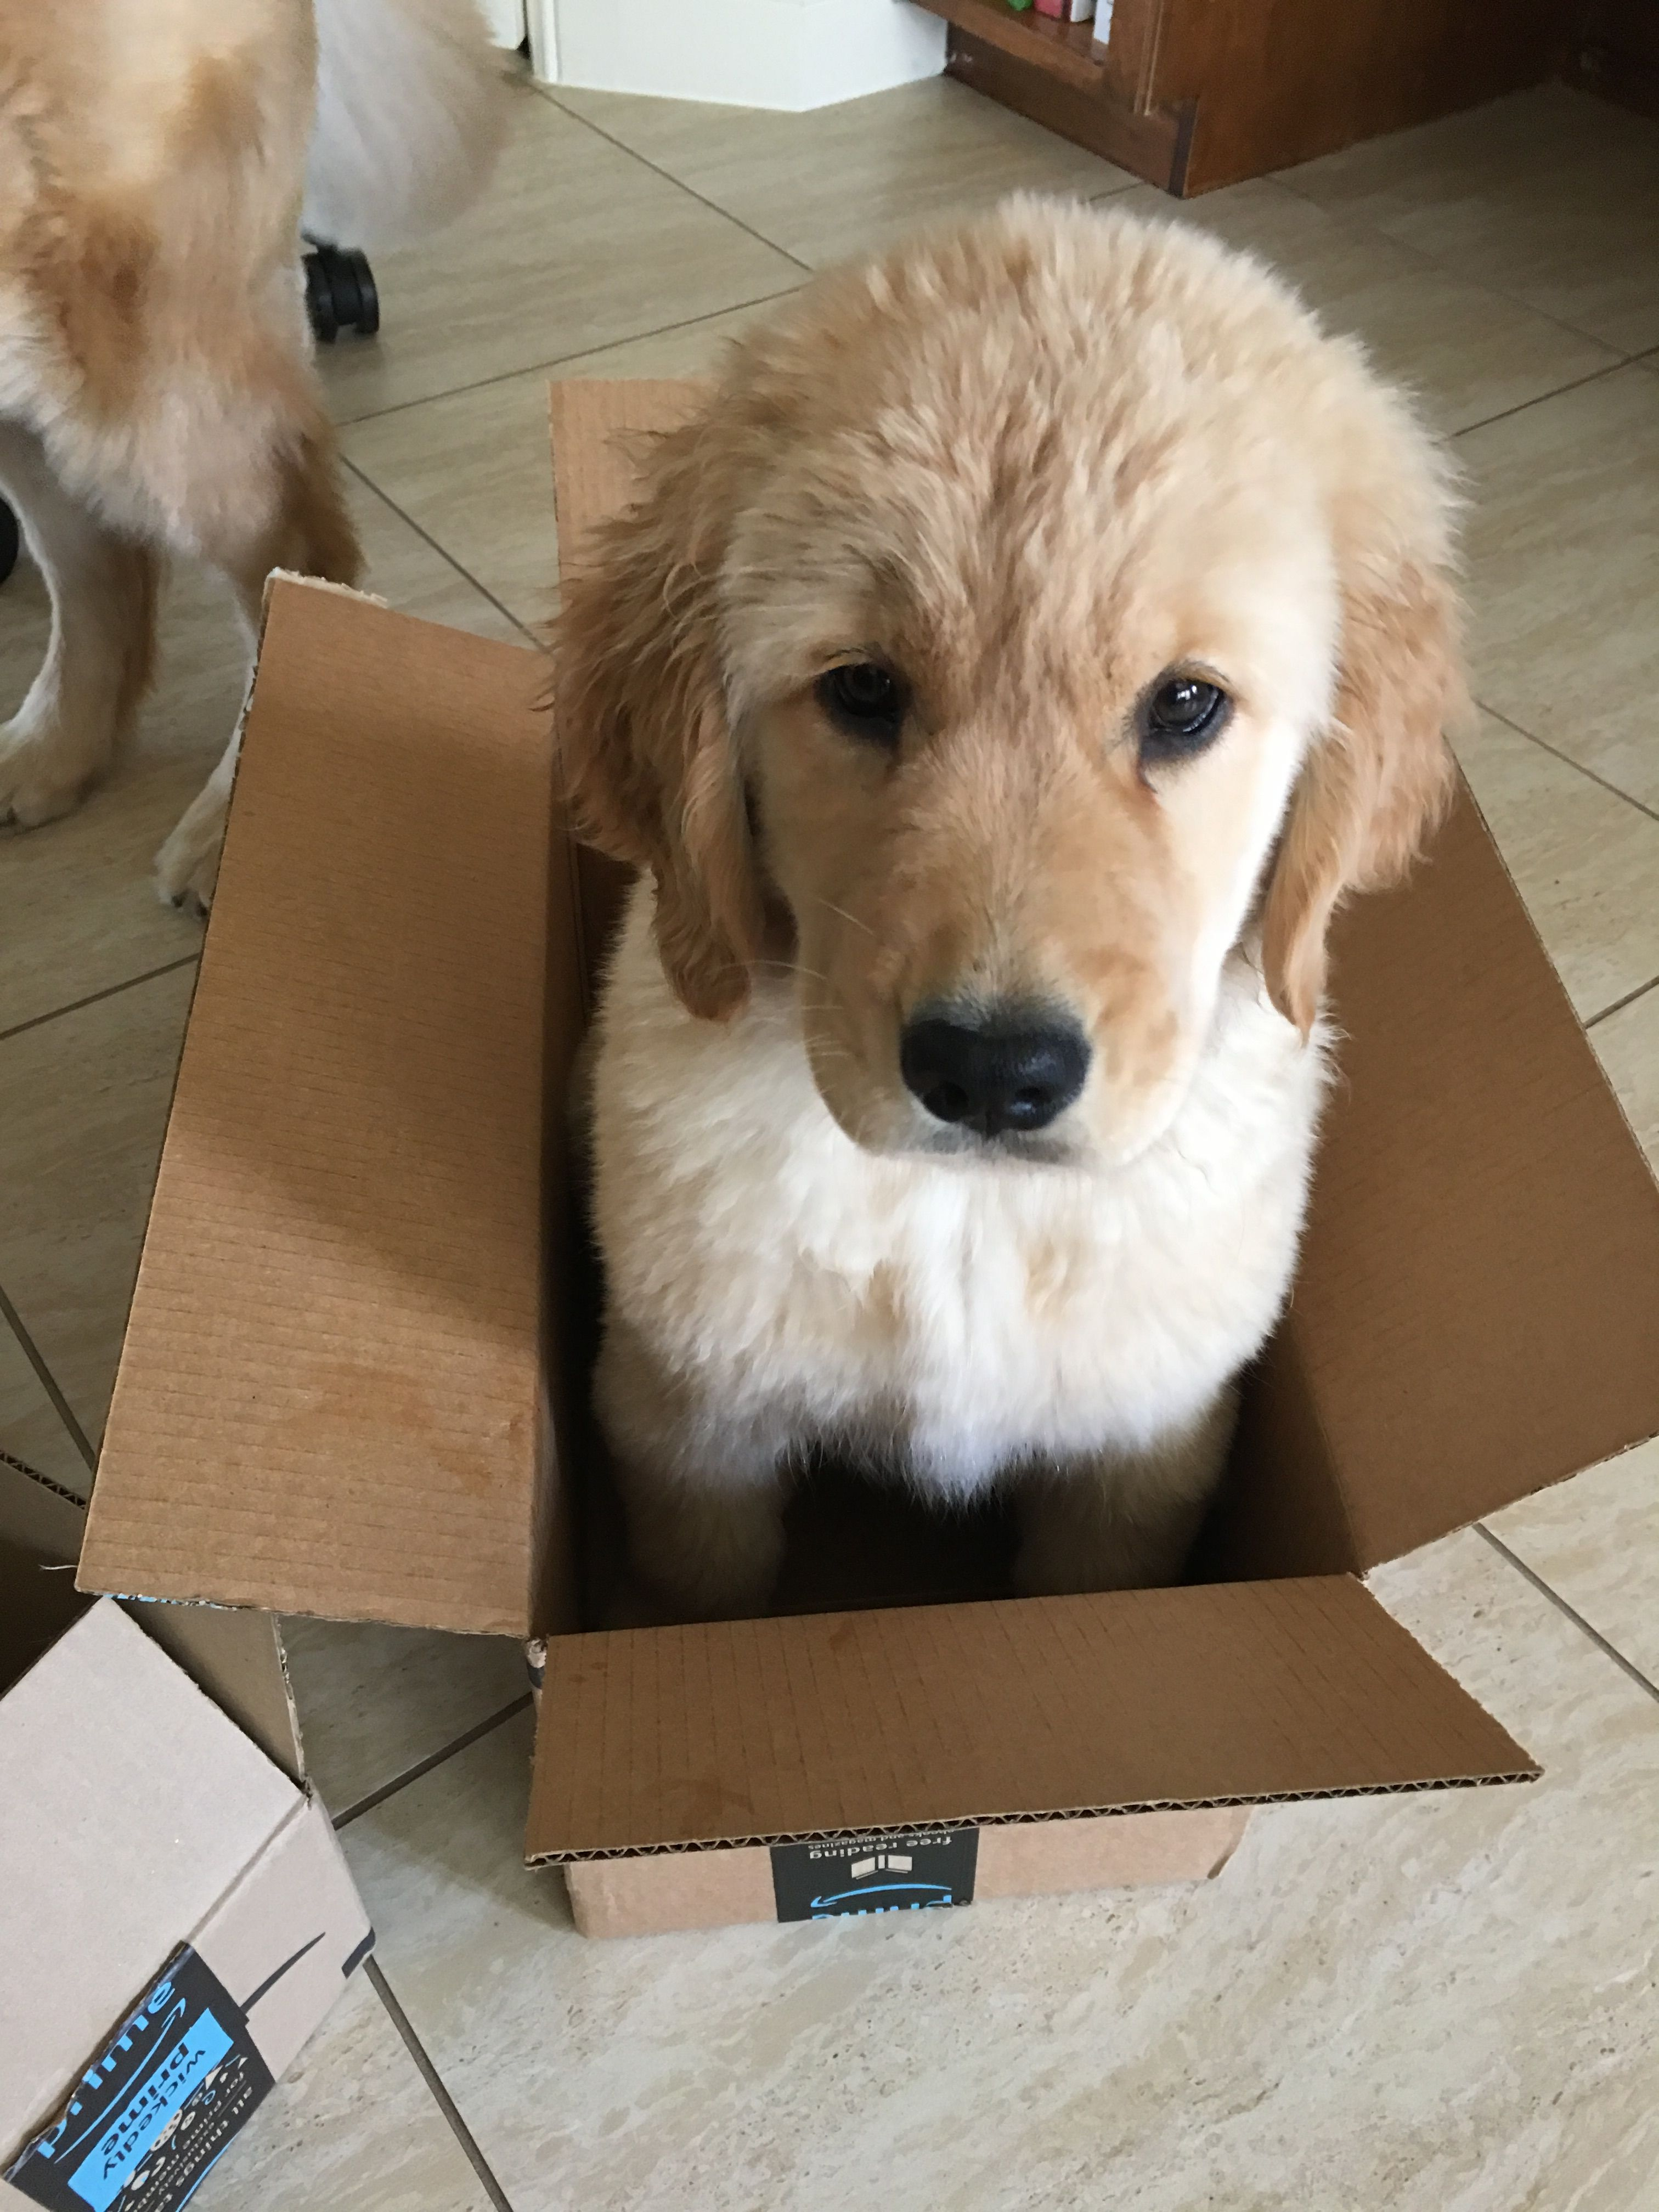 Puppy In A Box Puppies Dogs And Puppies Dogs